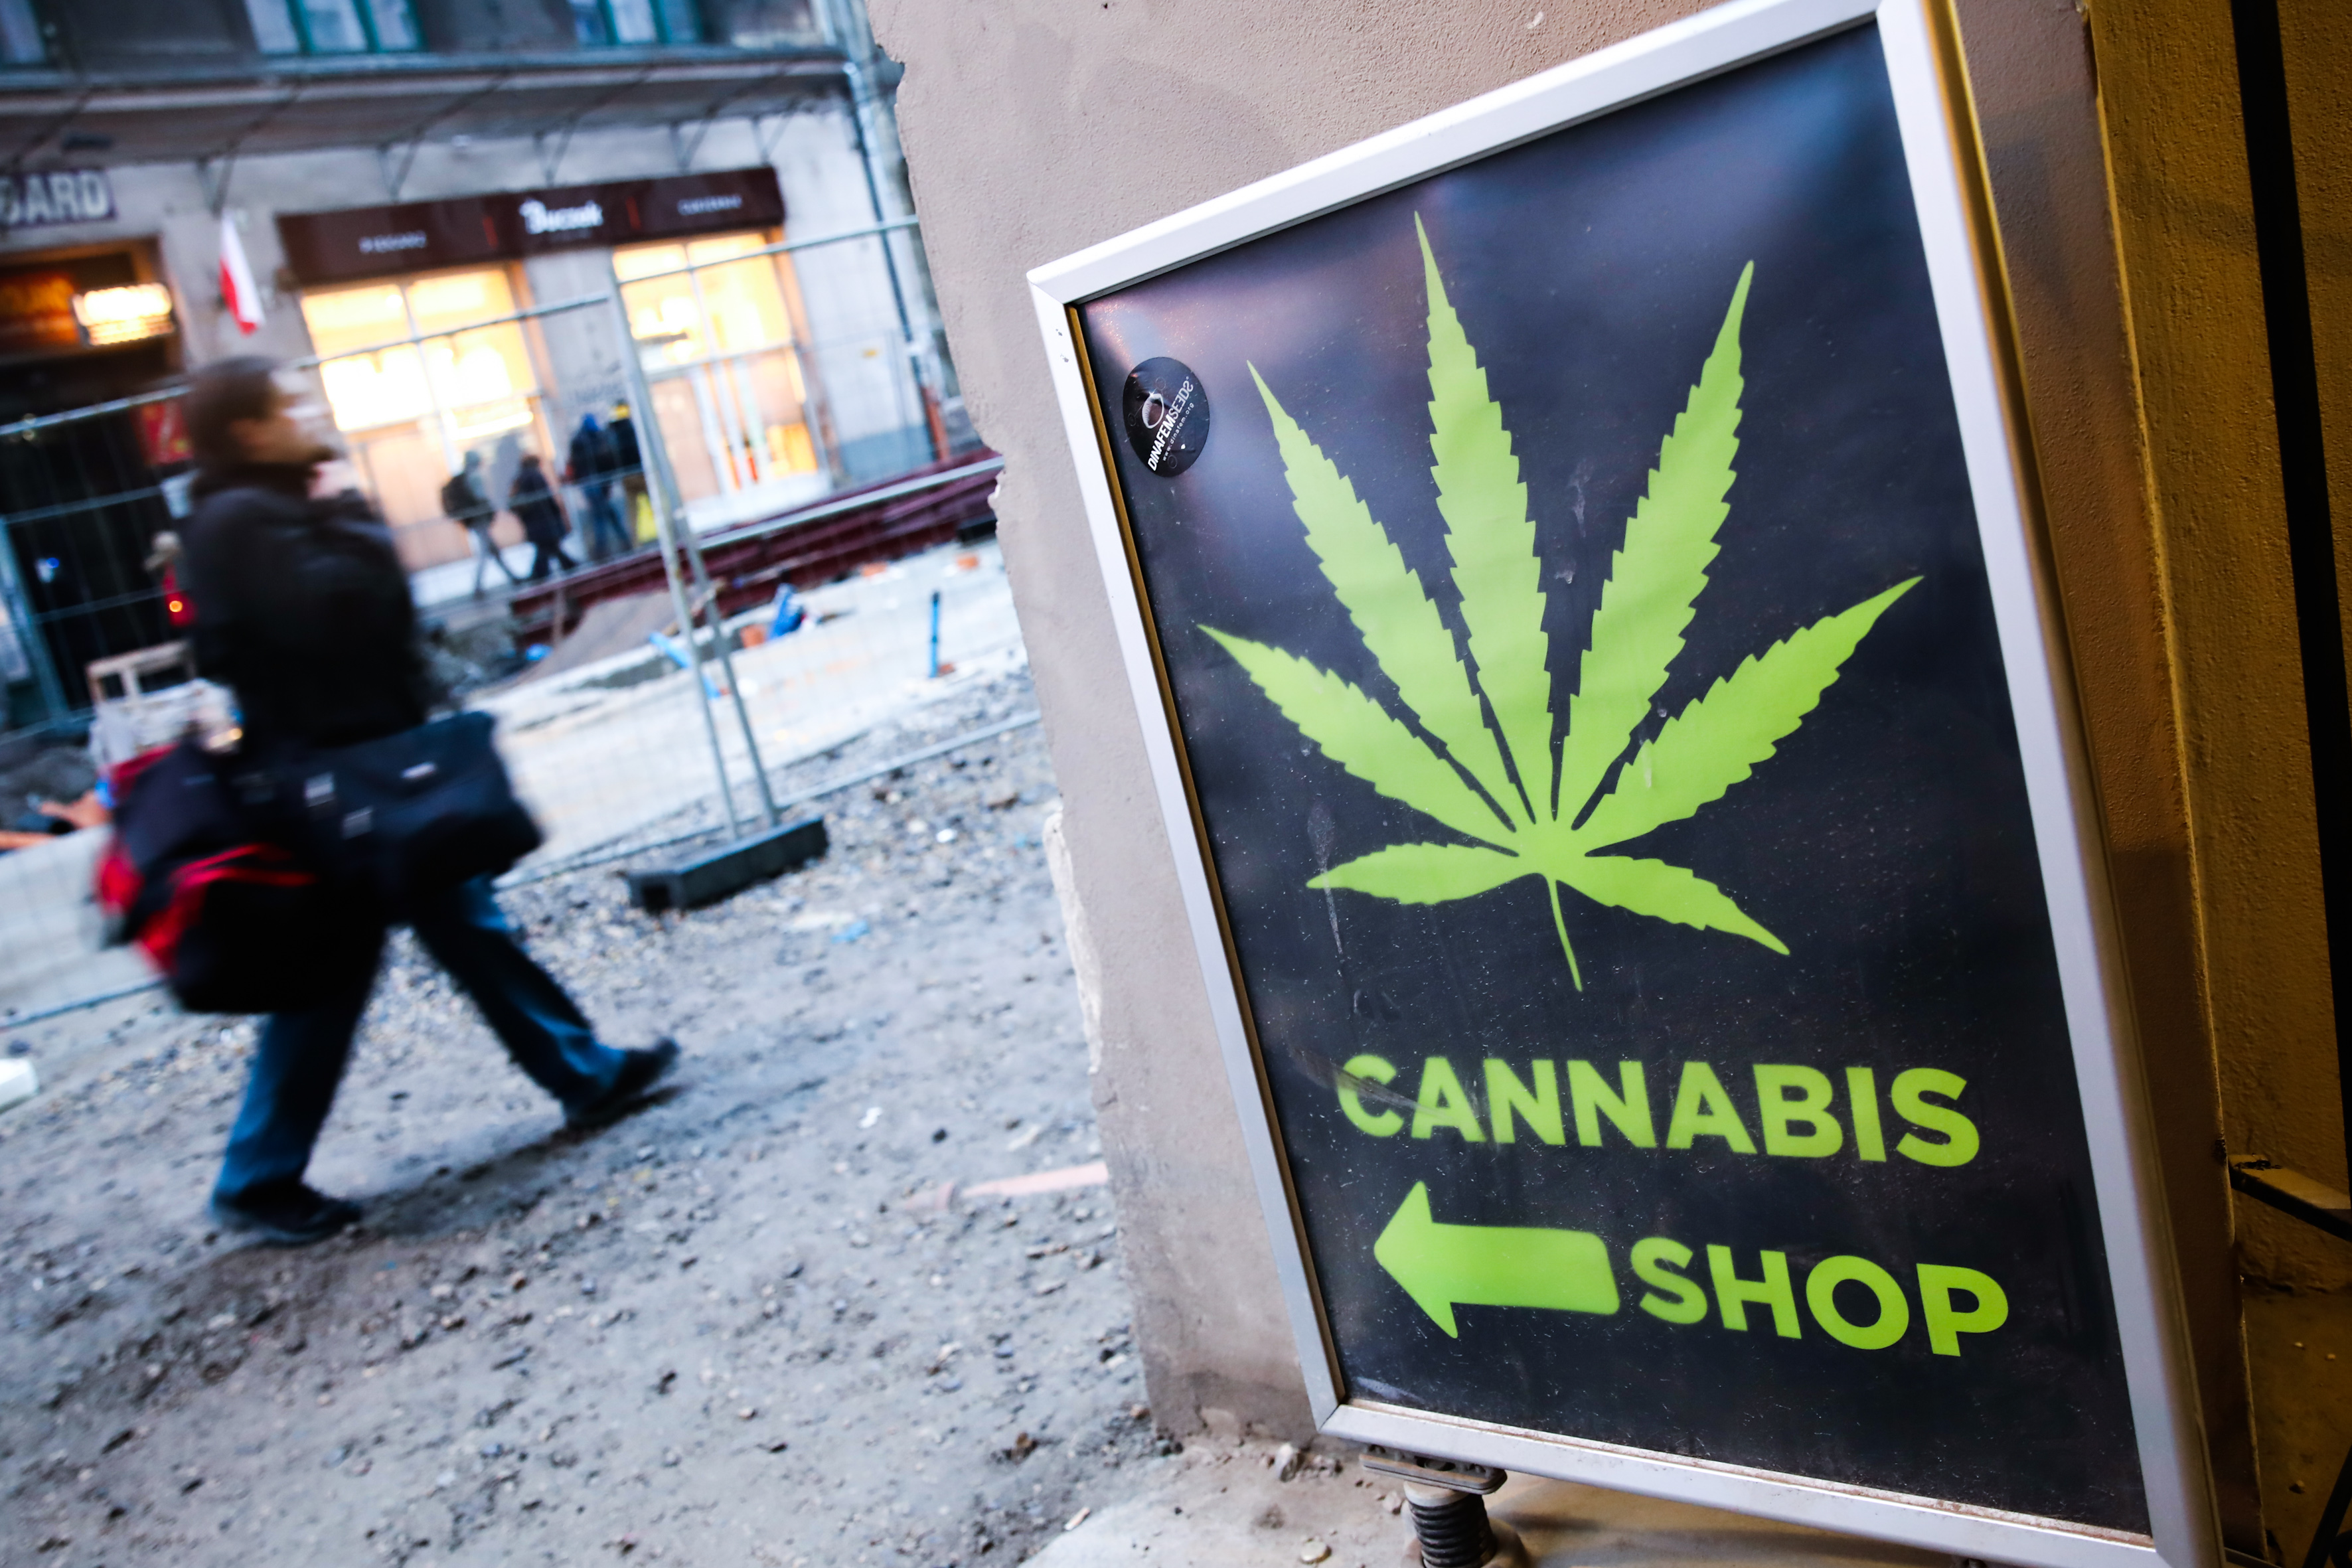 Support for marijuana legalization is at an all-time high in a new poll